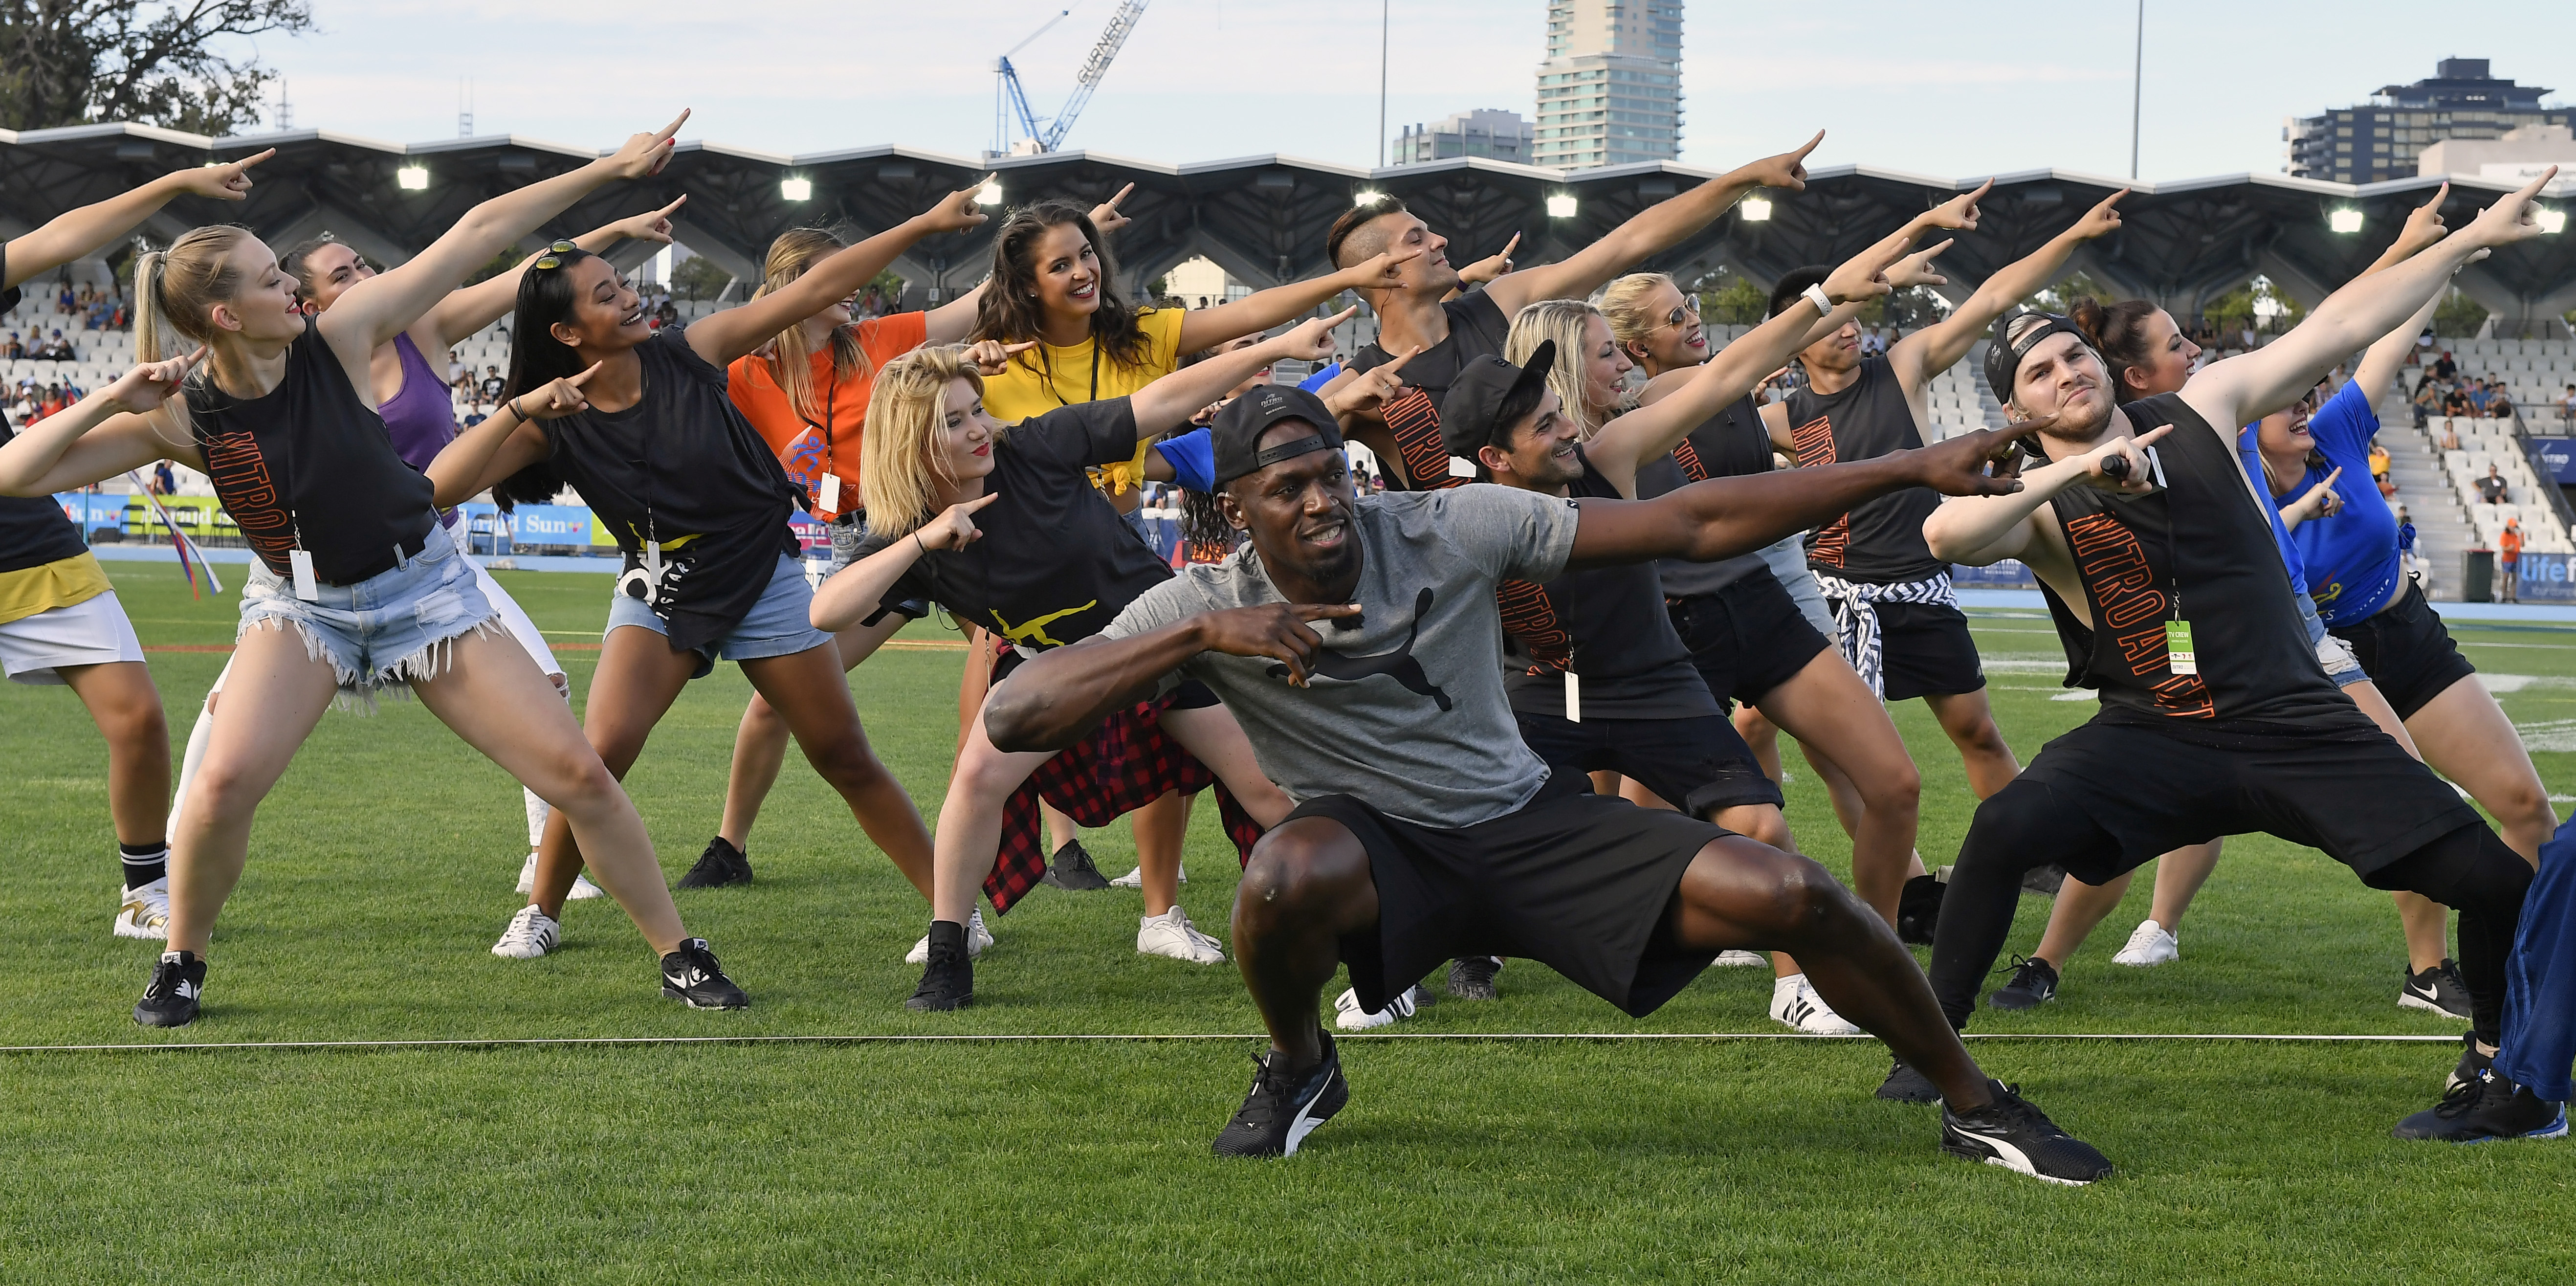 Jamaica's Usain Bolt entertains the crowd before the start of the Nitro Athletics meet in Melbourne, Australia, Saturday, Feb. 04, 2017. (AP Photo/Andy Brownbill)